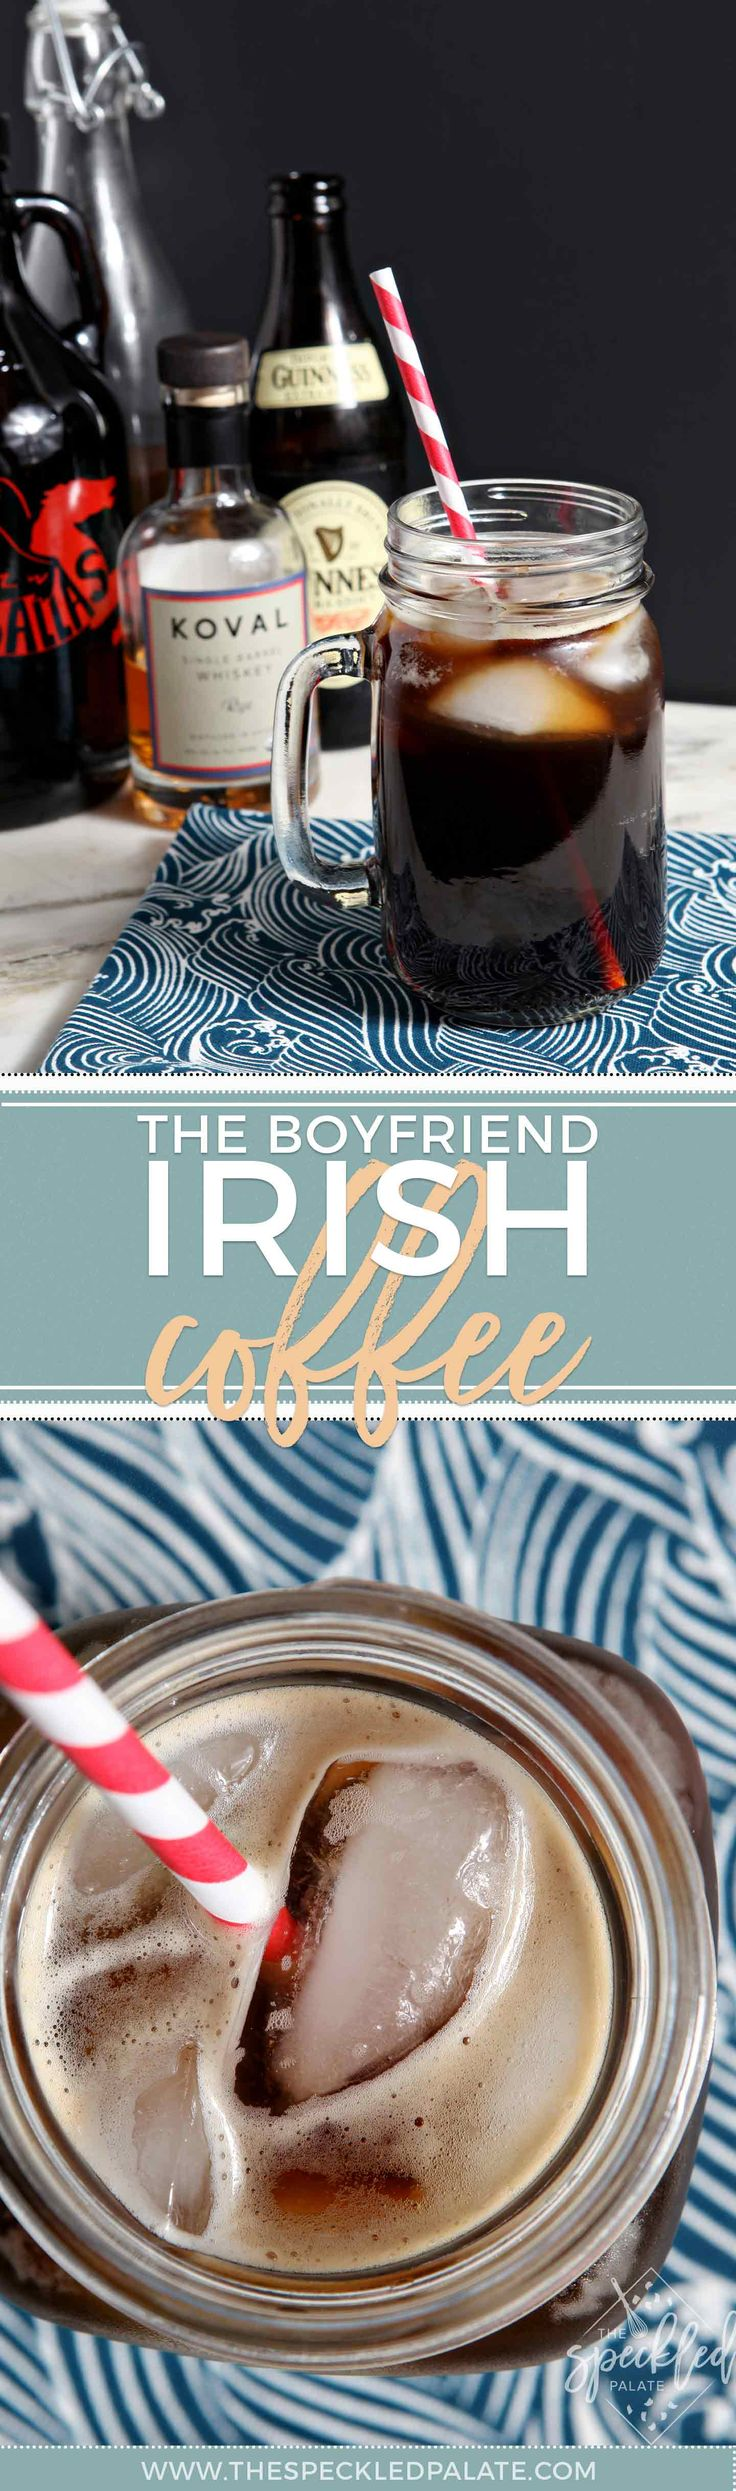 A take on traditional Irish coffee, the Boyfriend Irish Coffee is dark, heavy and masculine. | Irish Coffee Cocktail | Irish Coffee Recipe | Coffee Cocktail | National Coffee Day Cocktail | National Coffee Day Recipe | Cold Brew Cocktail | Irish Whiskey Cocktail | Guinness cocktail | St. Patrick's Day Drink | St. Patrick's Day Cocktail via @speckledpalate